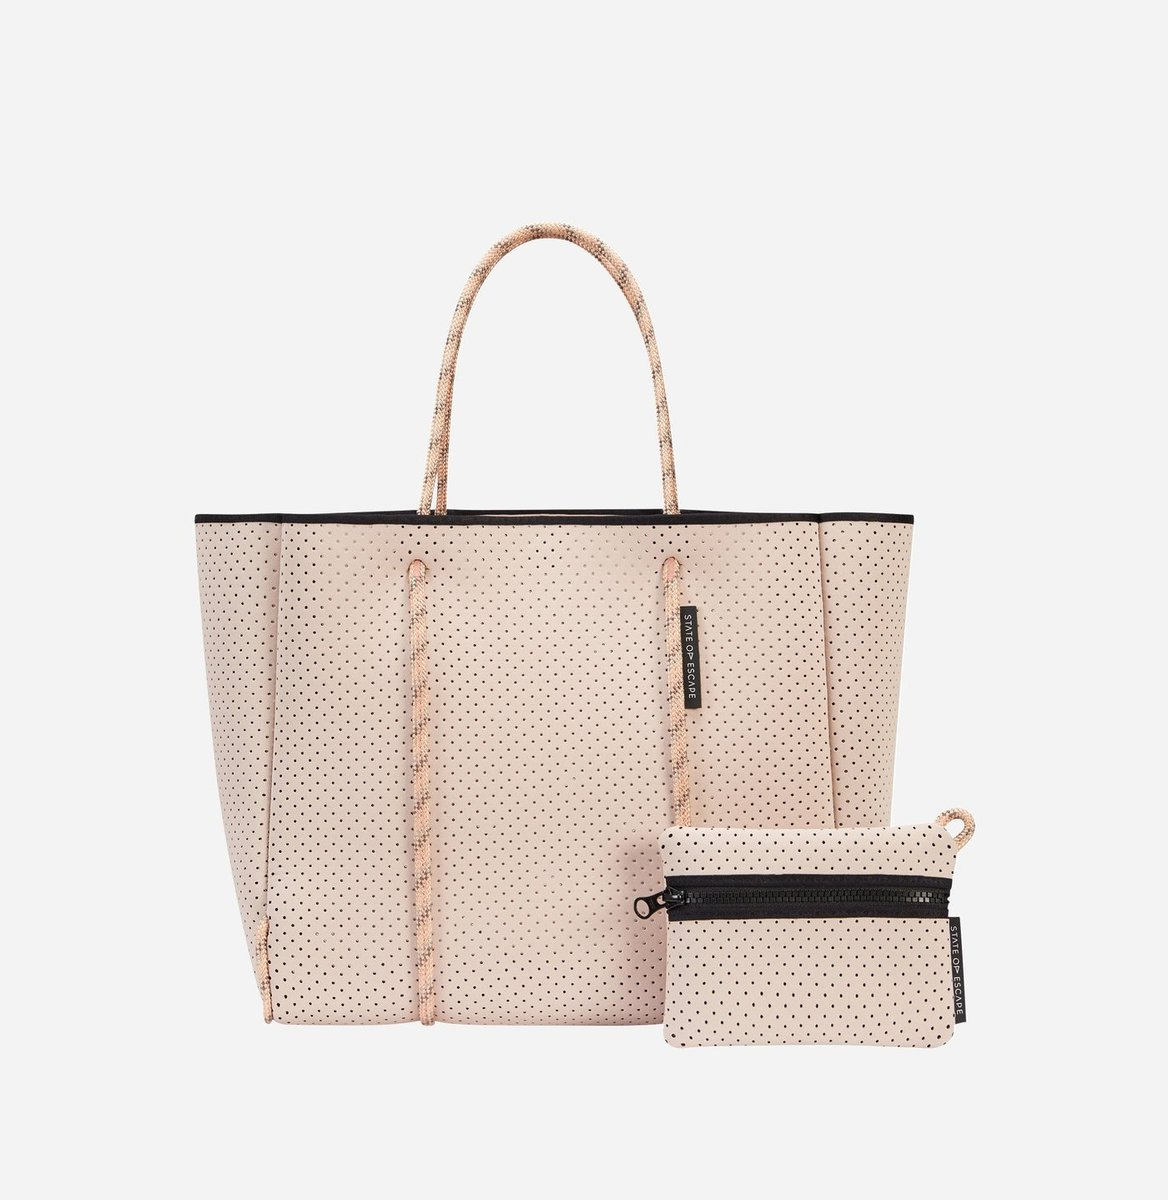 a9d8c3970139 ステイト オブ エスケープ FLYING SOLO BAG 新色 Blush State of Escape ビーチ トートバッグ ステイトオブエスケープ  ロンハーマン 取扱 ネオプレン マザーズバッグ/ ...